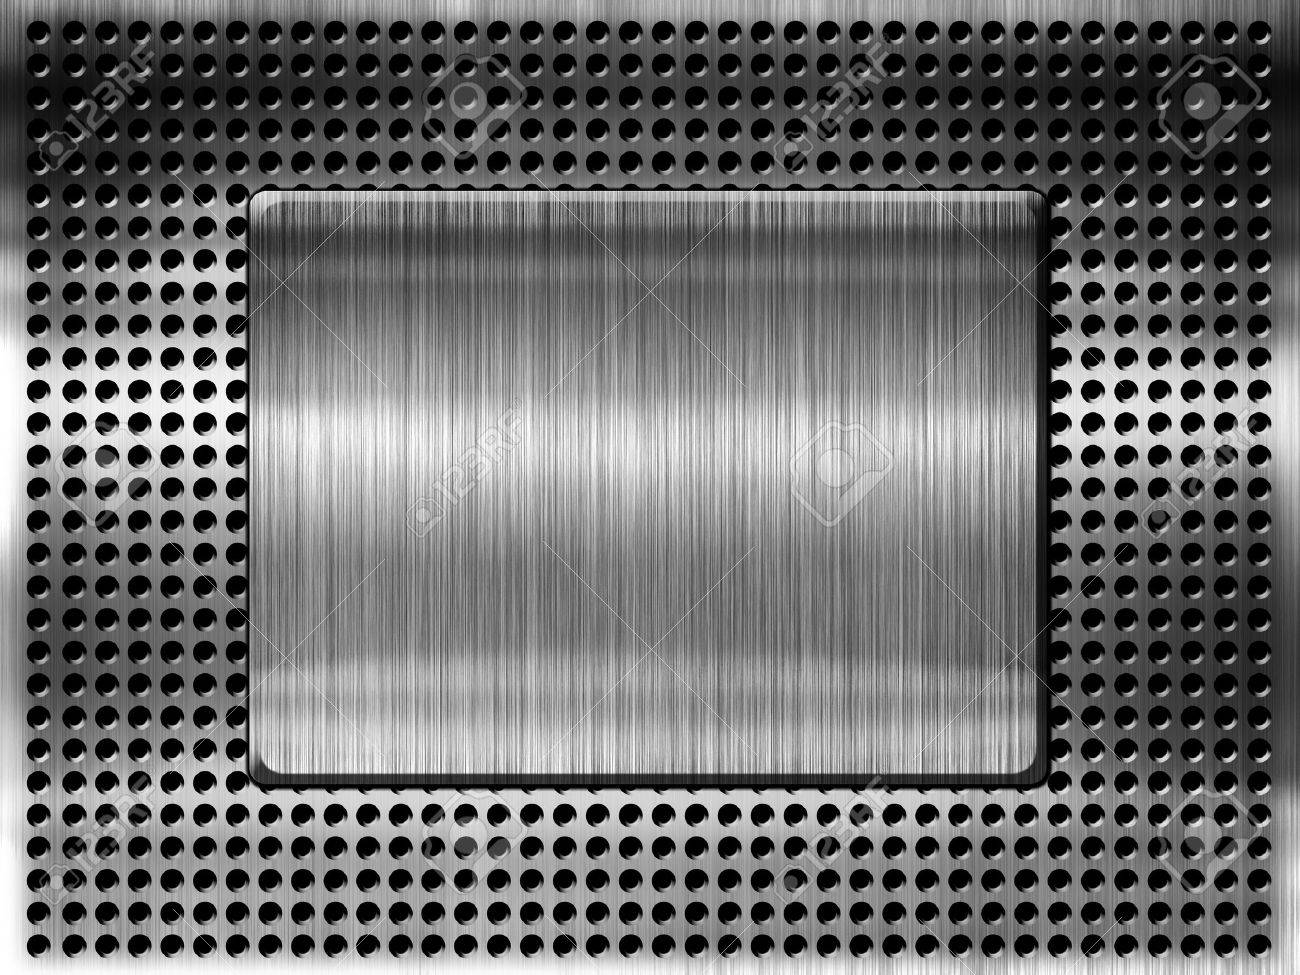 High quality metal grill template background Stock Photo - 14669564